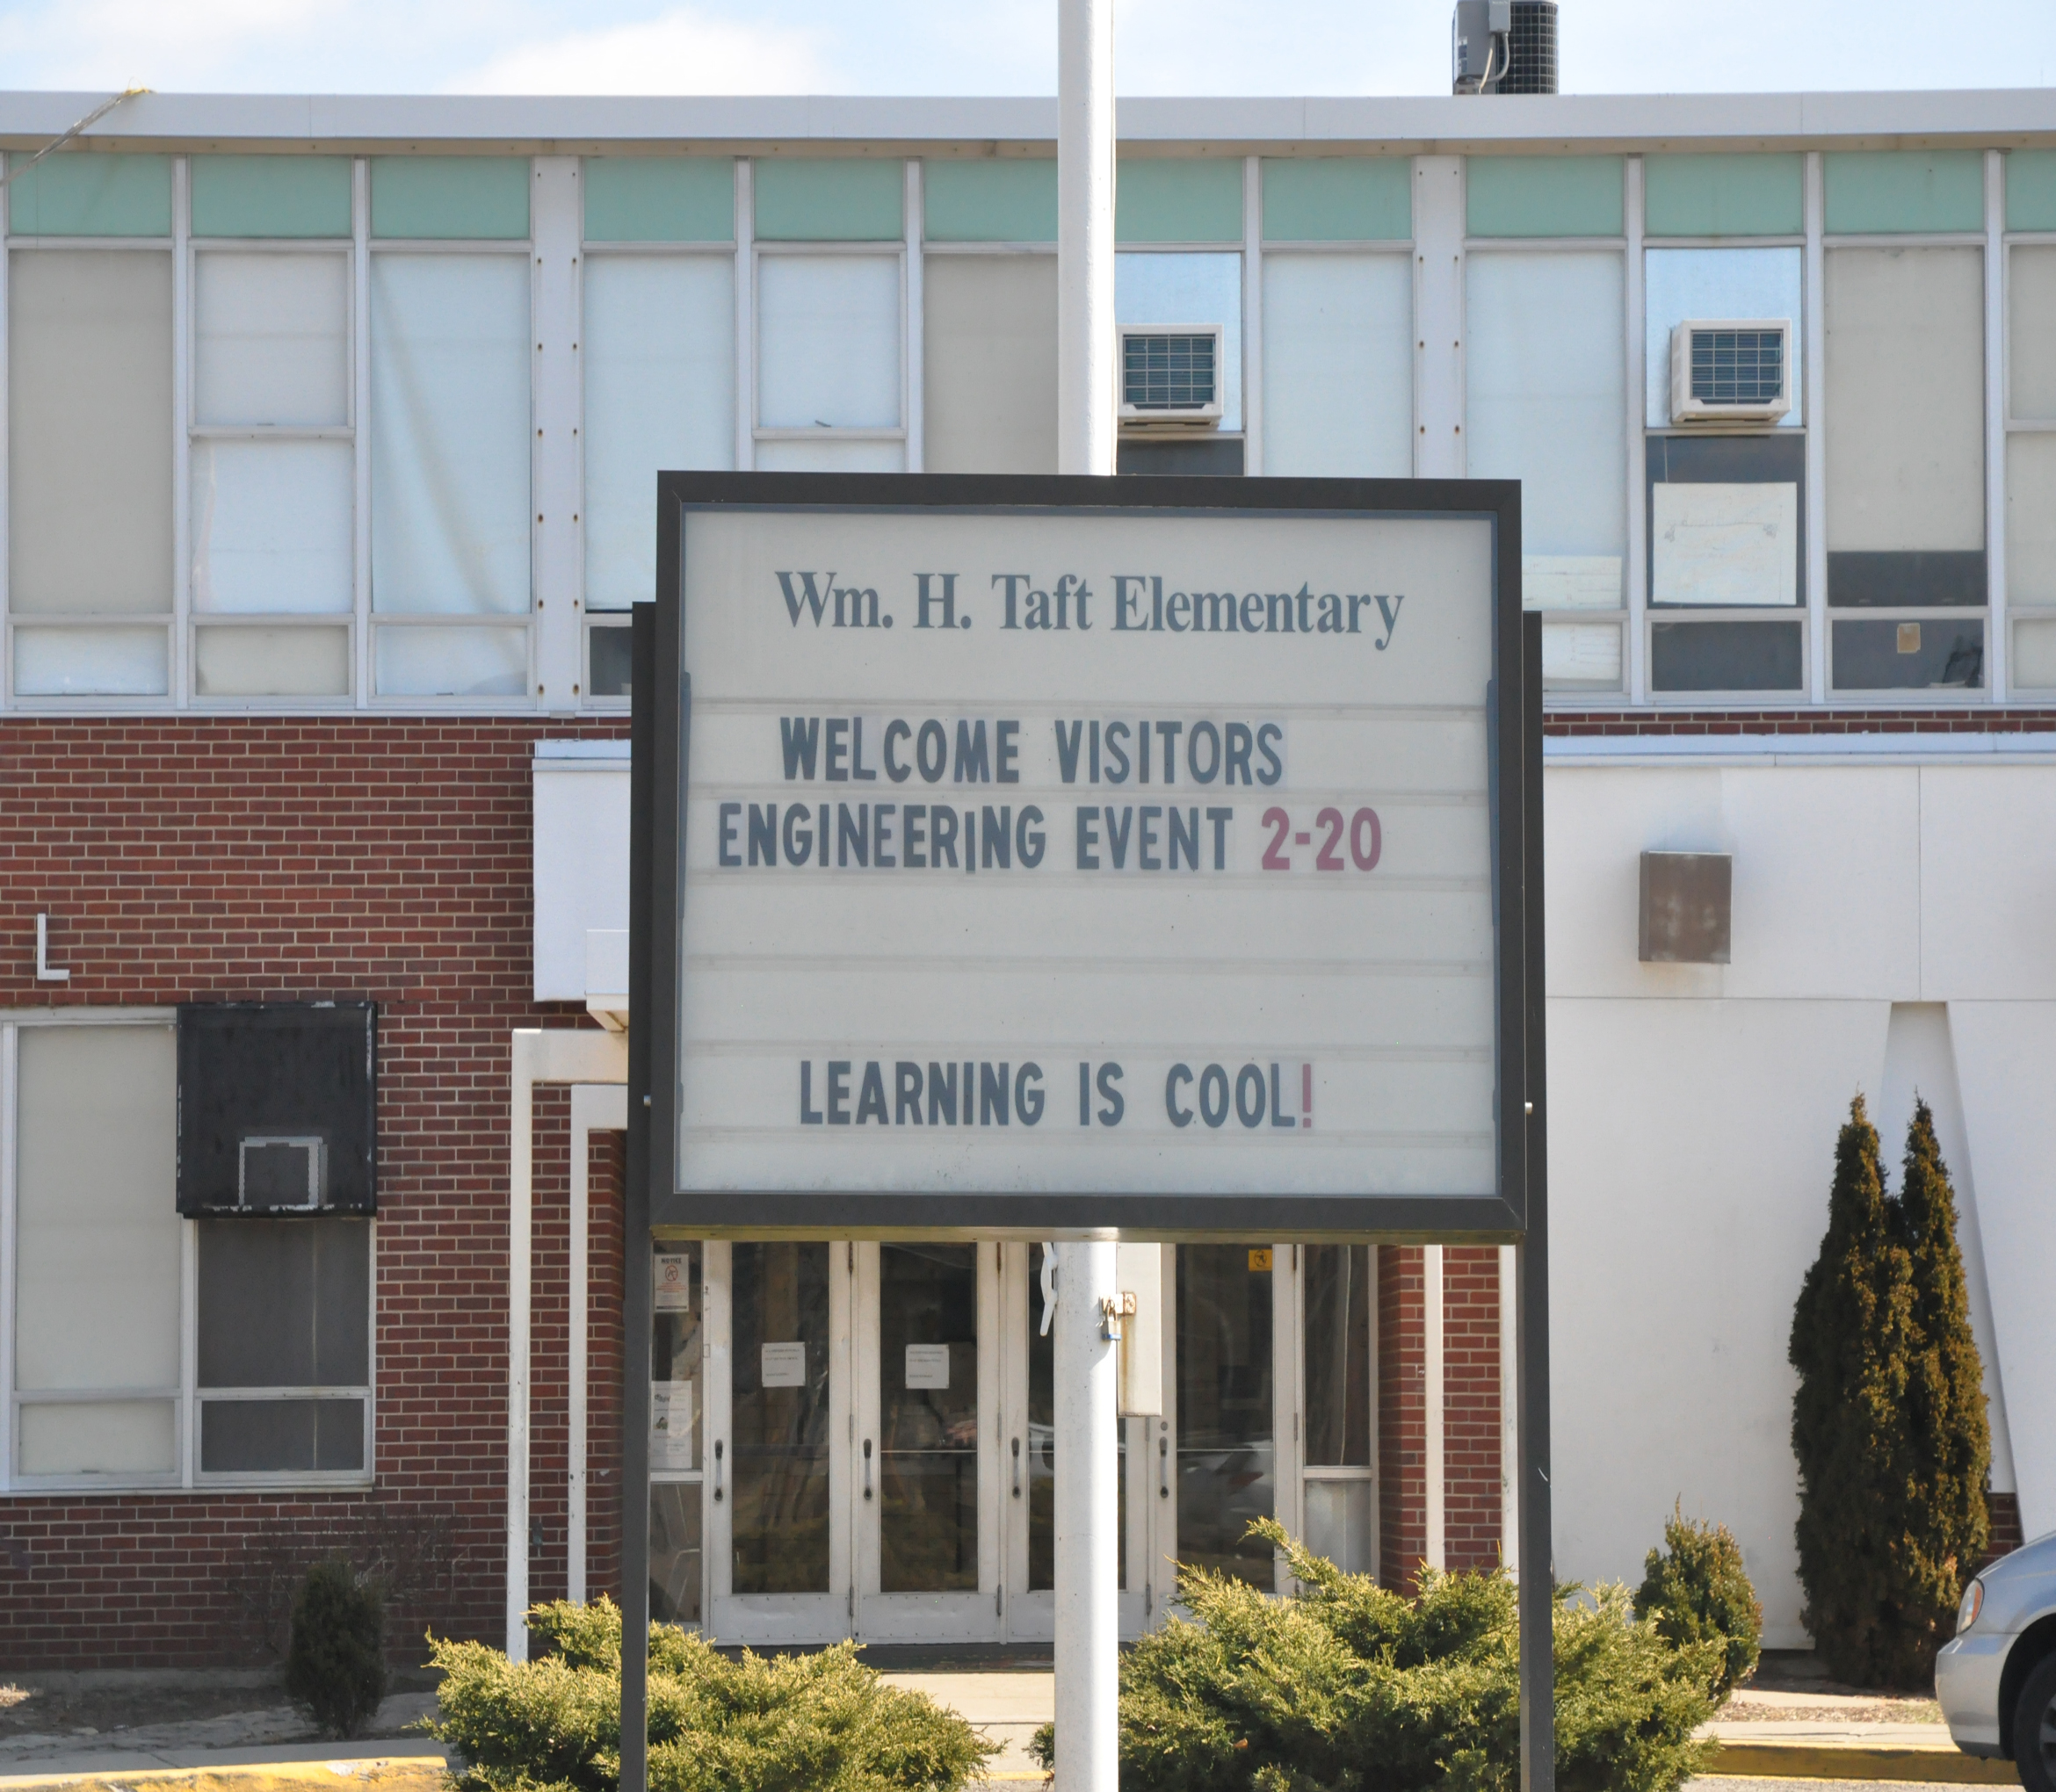 What Is A Stem School Ohio: Taft Elementary School And SAME Form A STEM Partnership